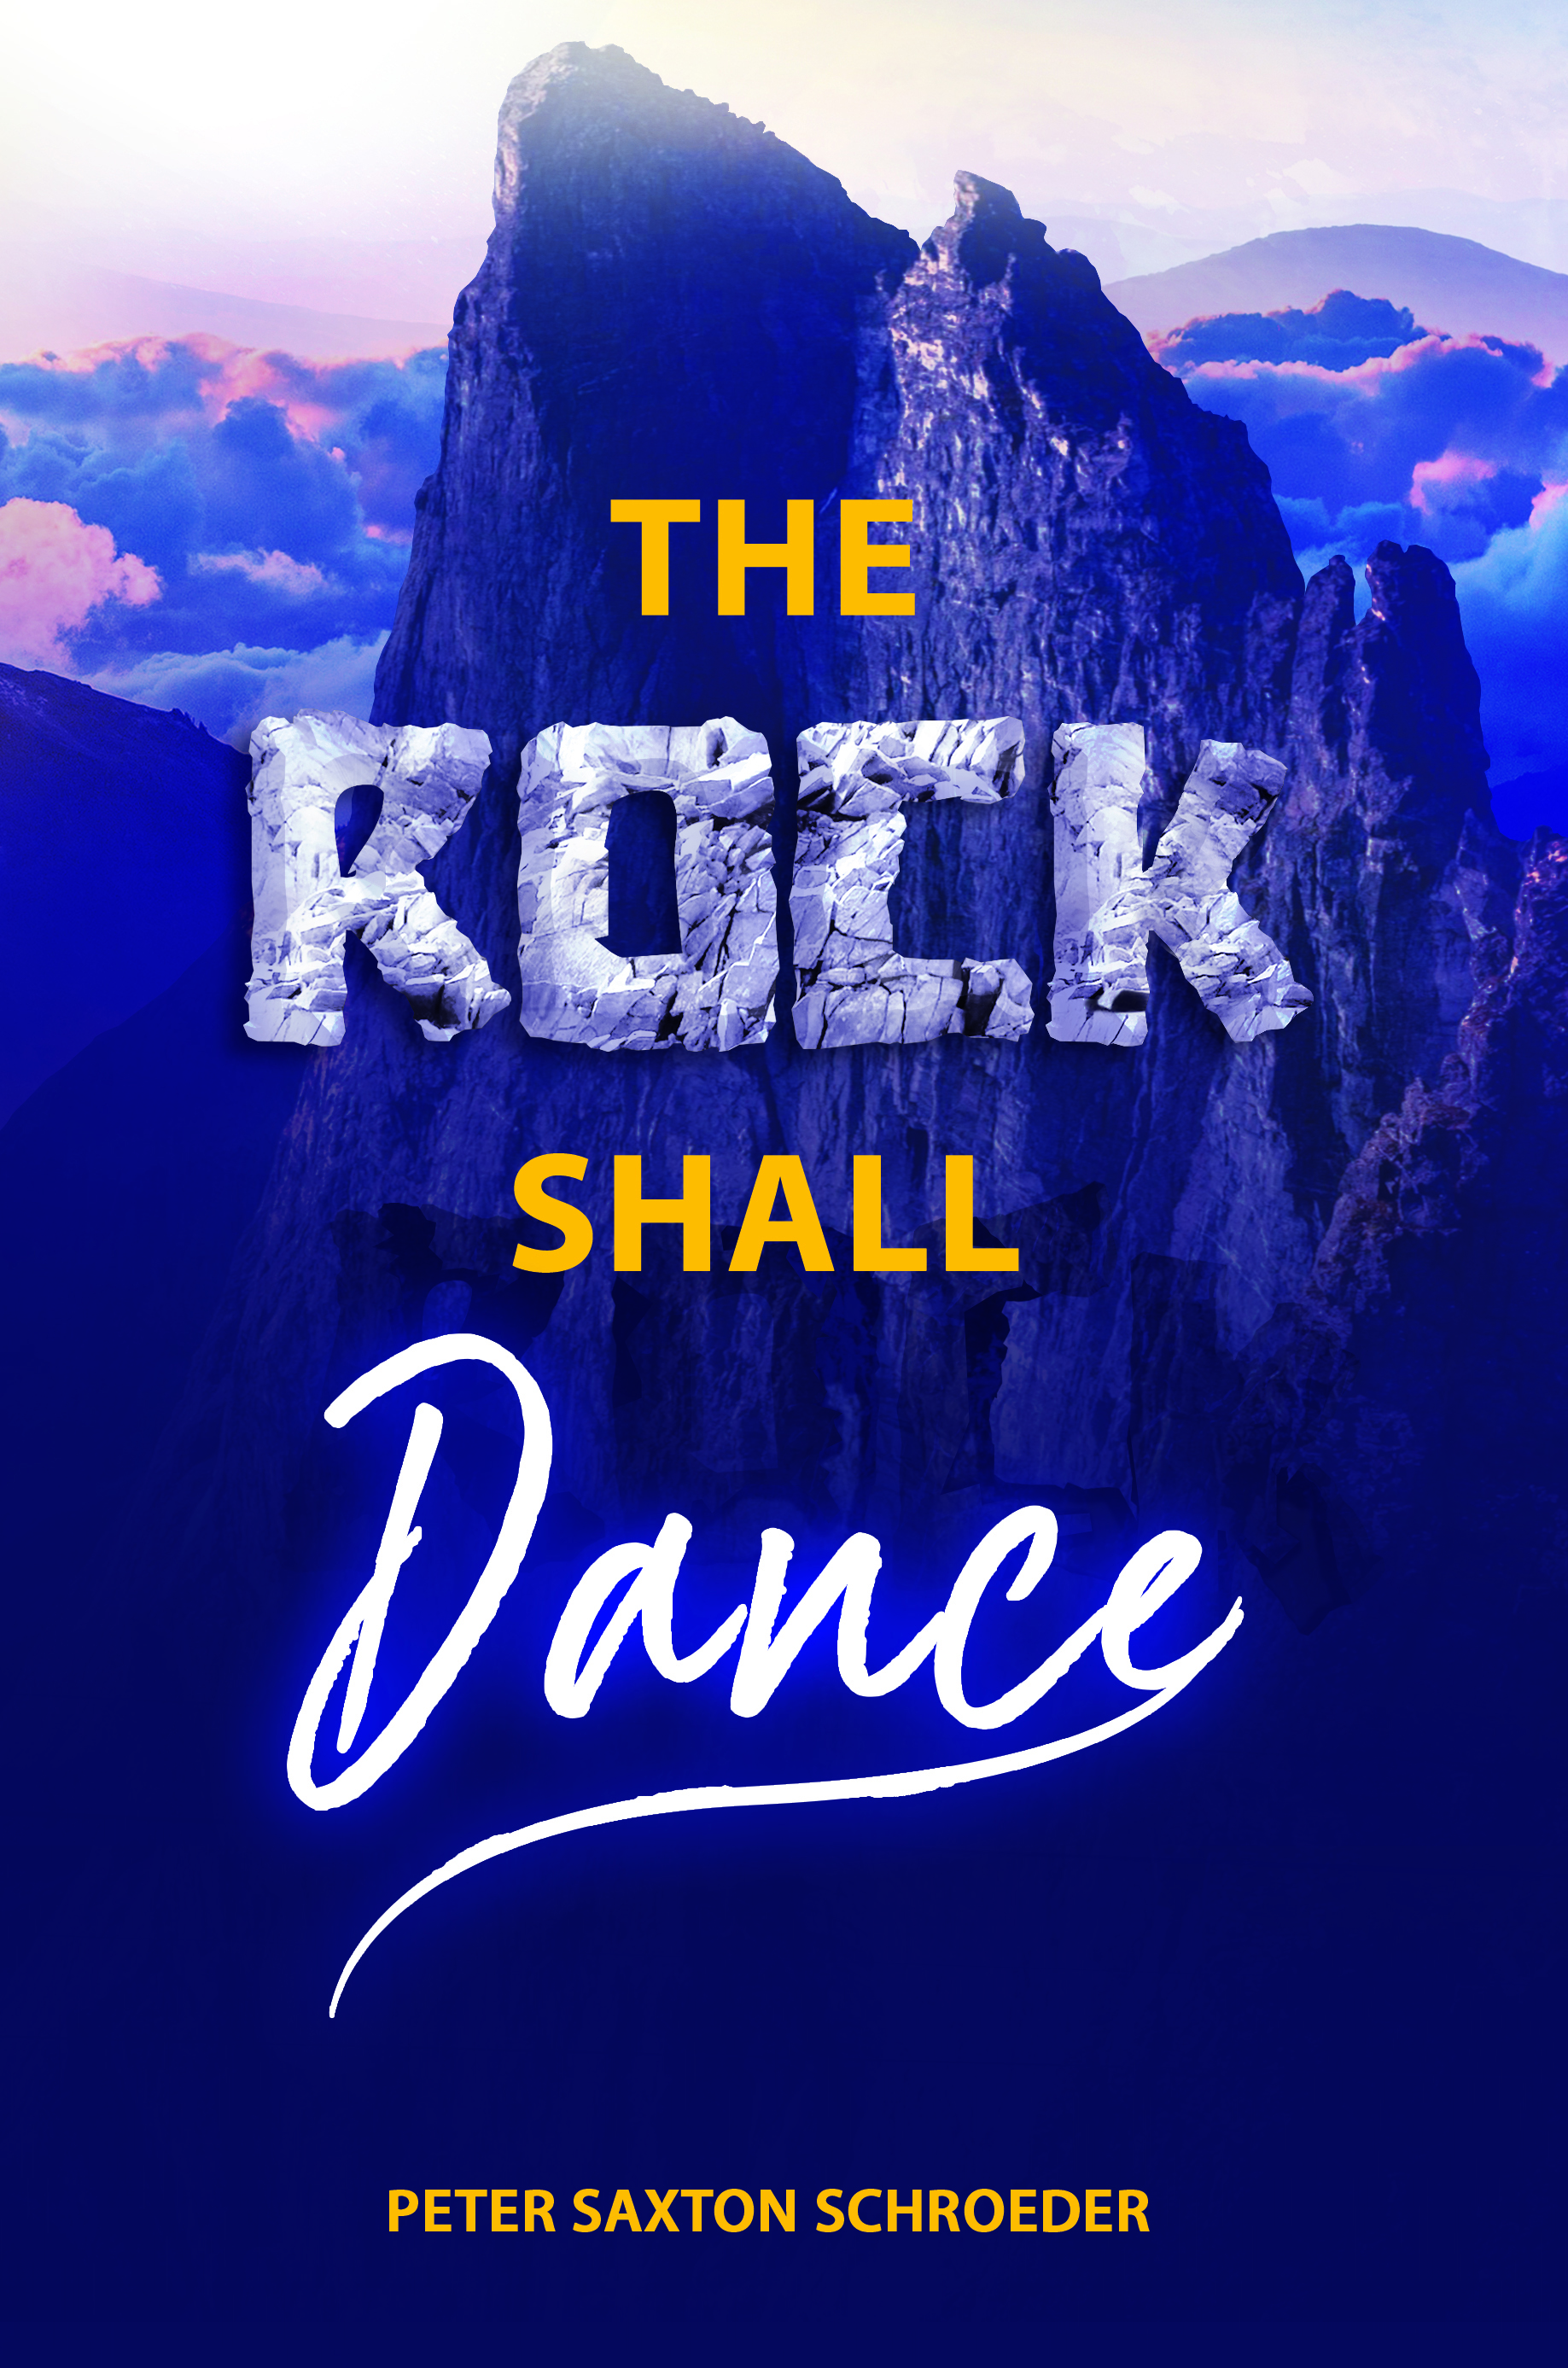 the-rock-book-cover-kindle-1